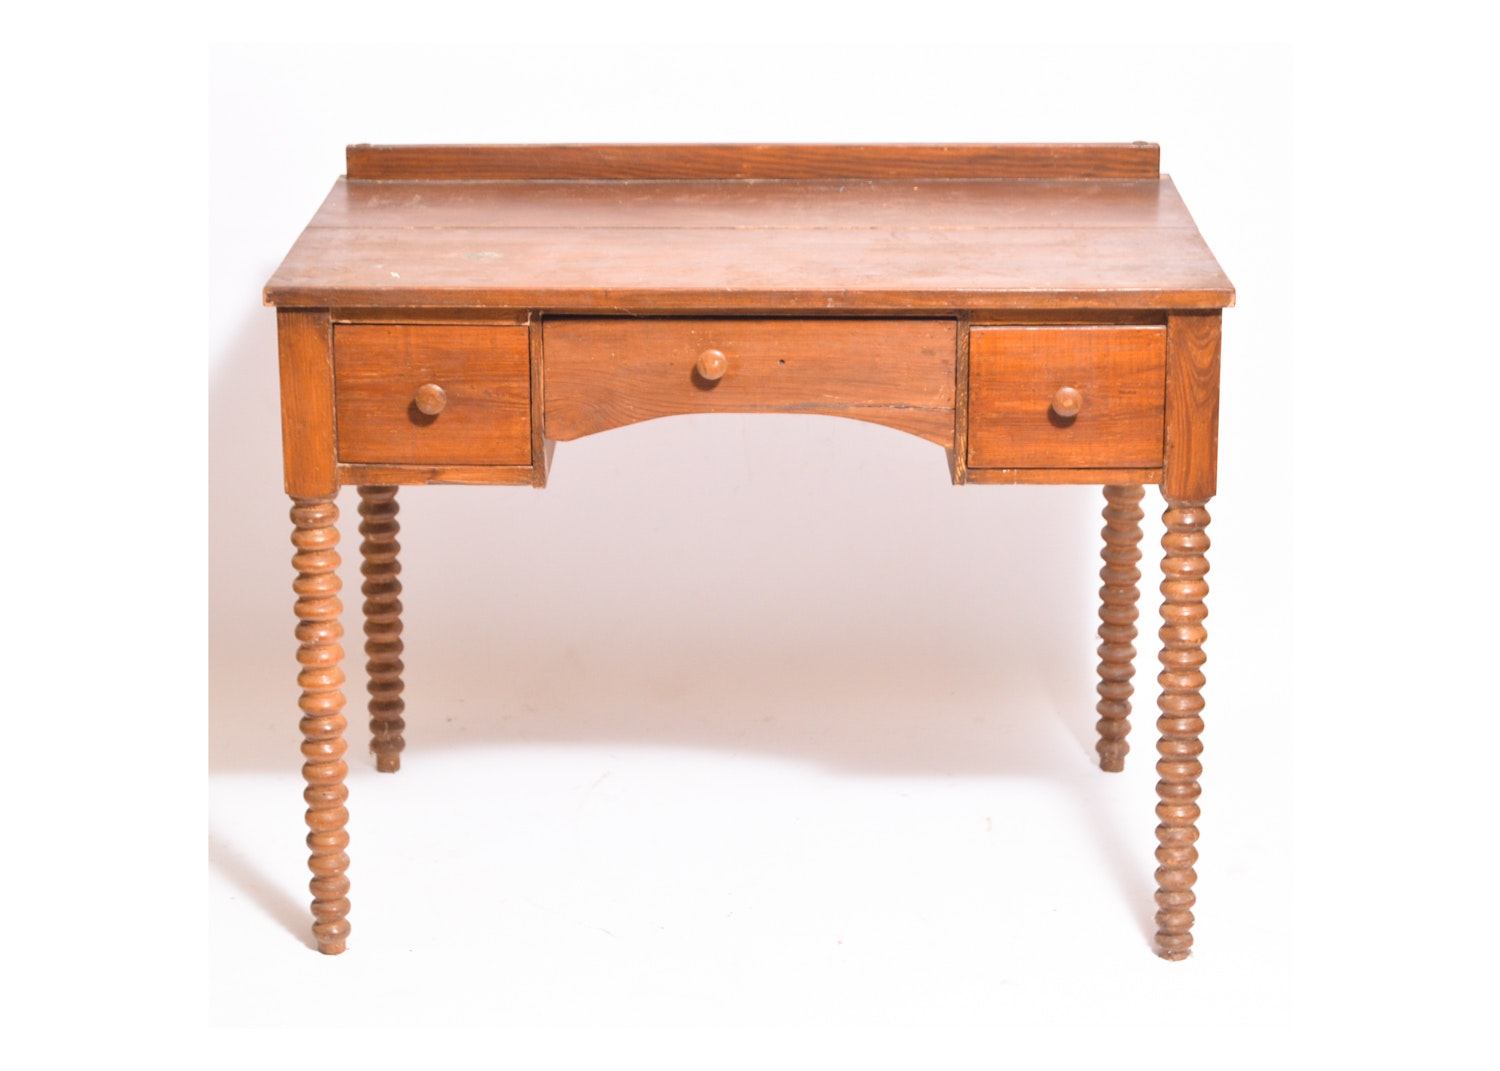 Antique Spool-Turned Southern Yellow Pine Desk